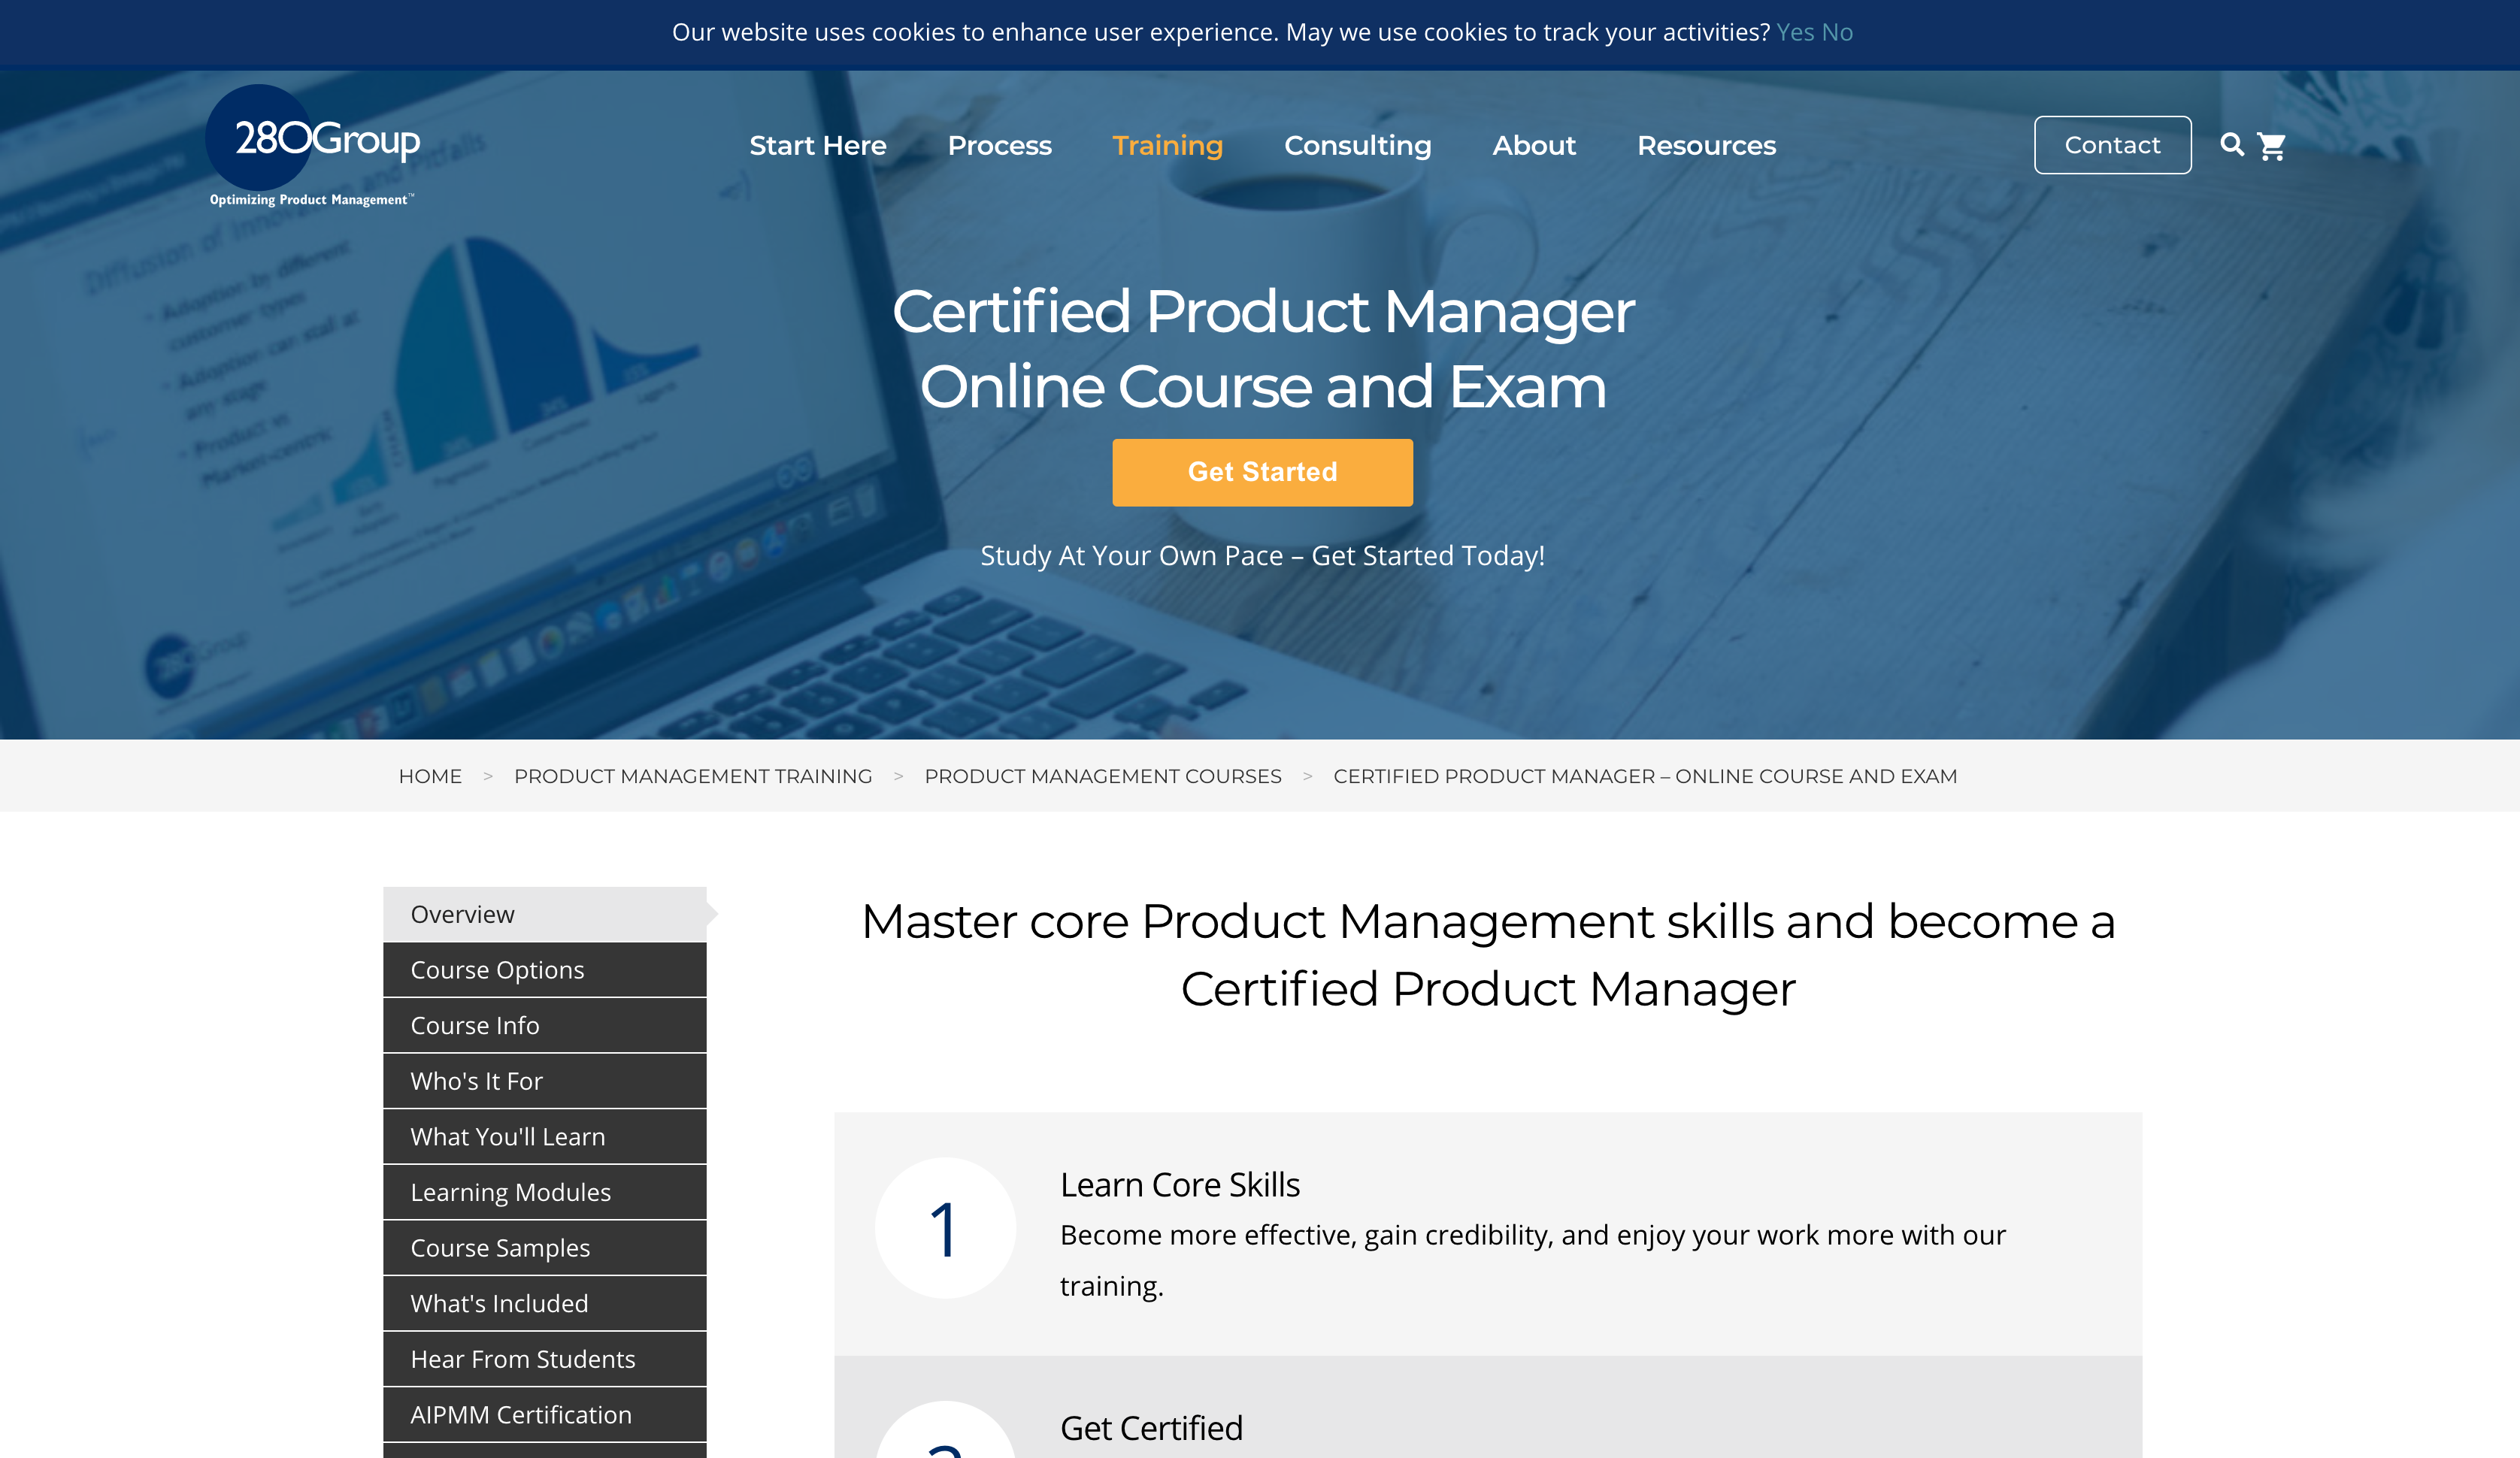 Certified Product Manager (280Group)